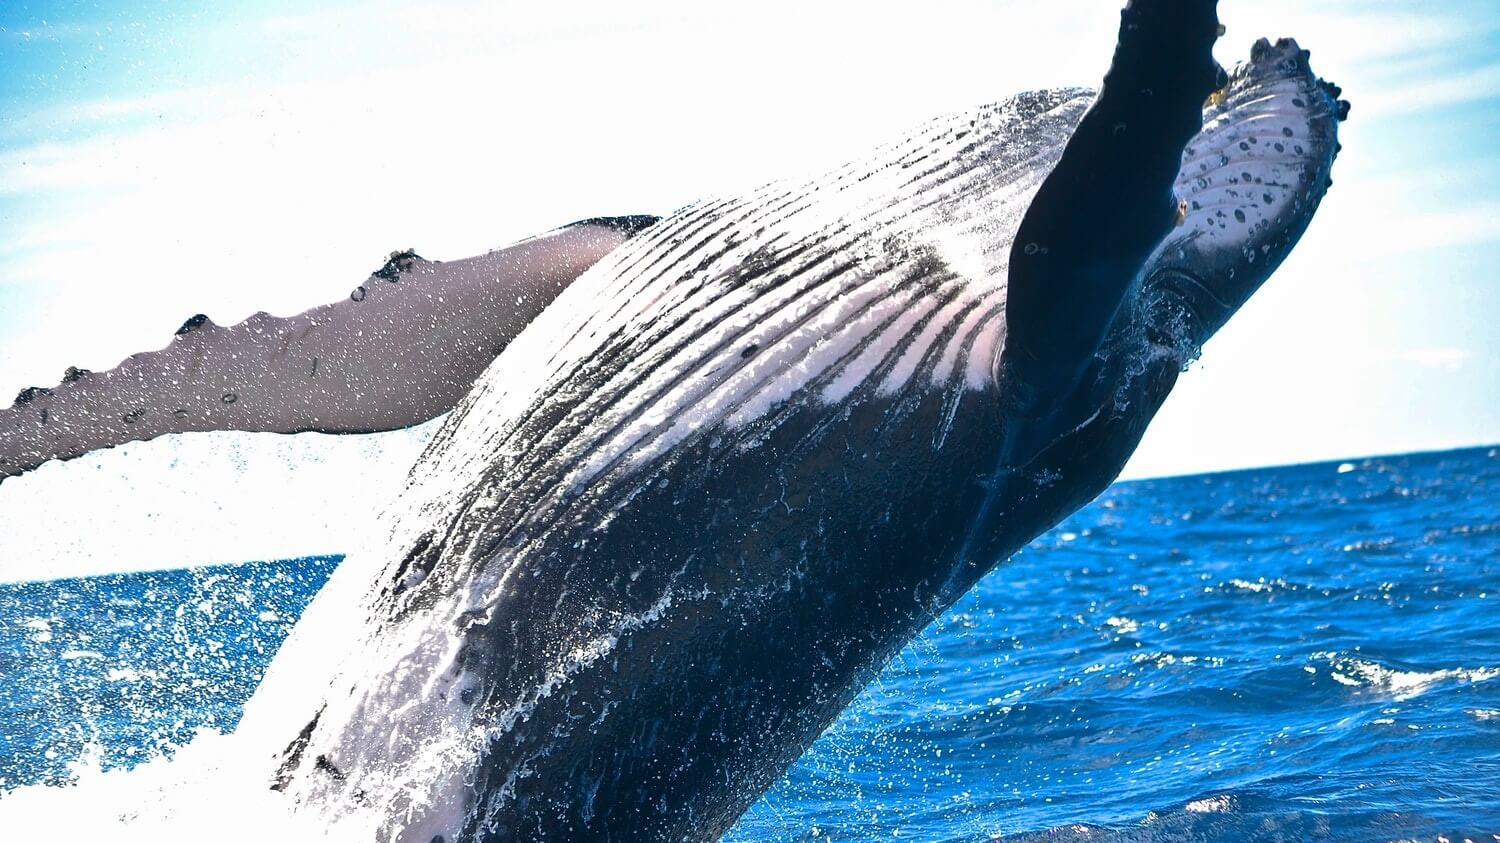 If We Want to Save The Whales, We Must Stop Eating Fish